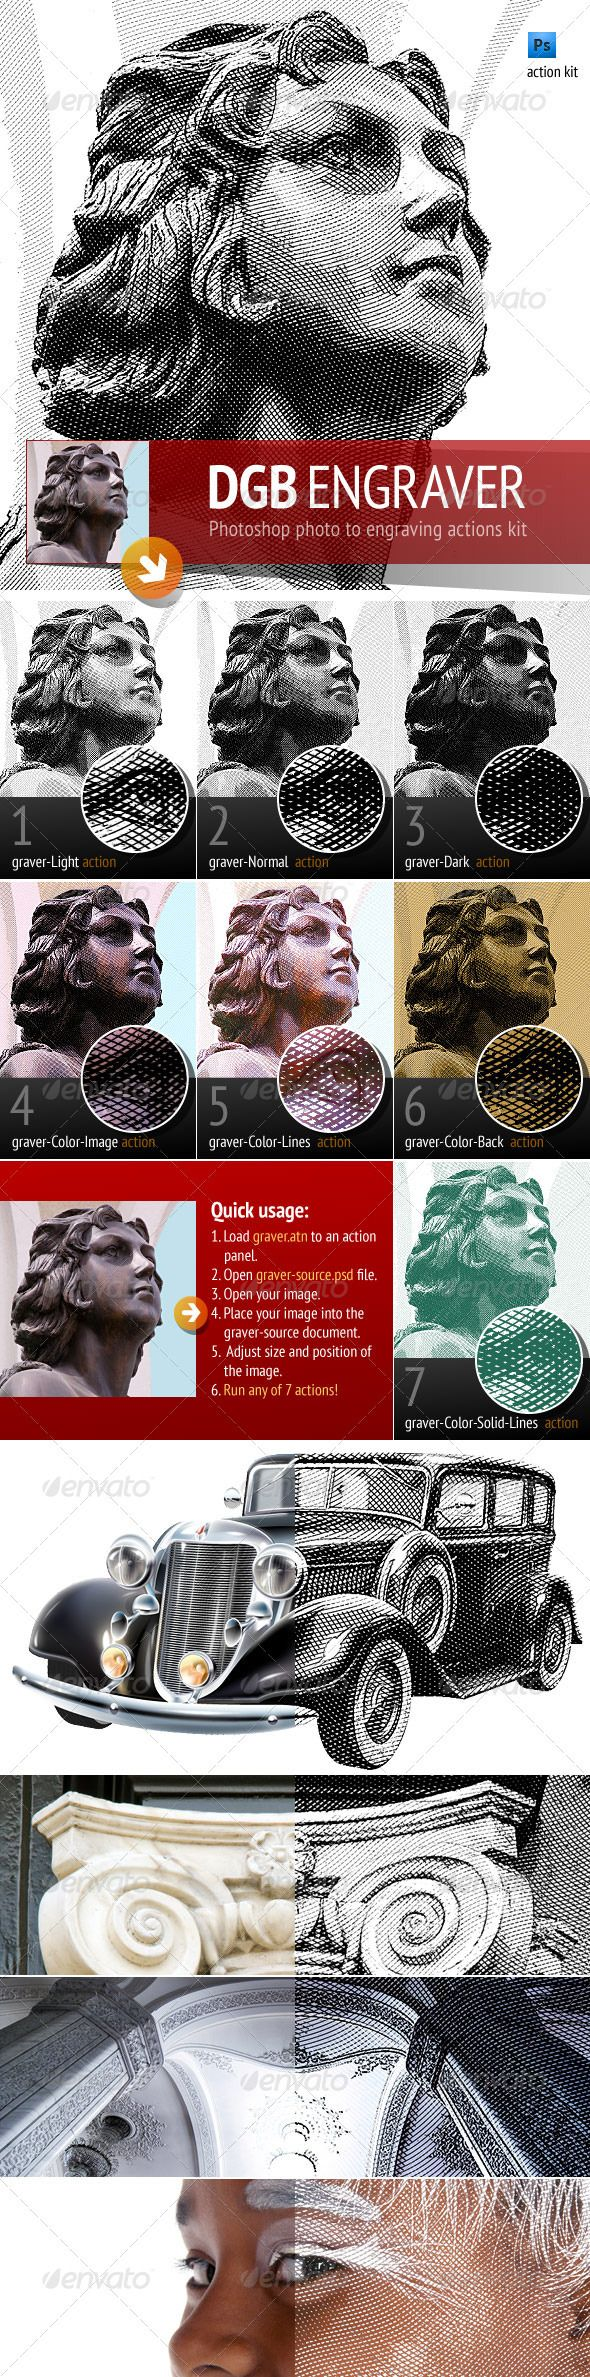 DGB Engrave action kit – That's a tool to easily turn a photo into stylized engraving. Although this process is very simple, please read the manual to avoid mistakes. DGB Engrave action kit has been tested on Photoshop CS4 , CS5 & CS3. $4